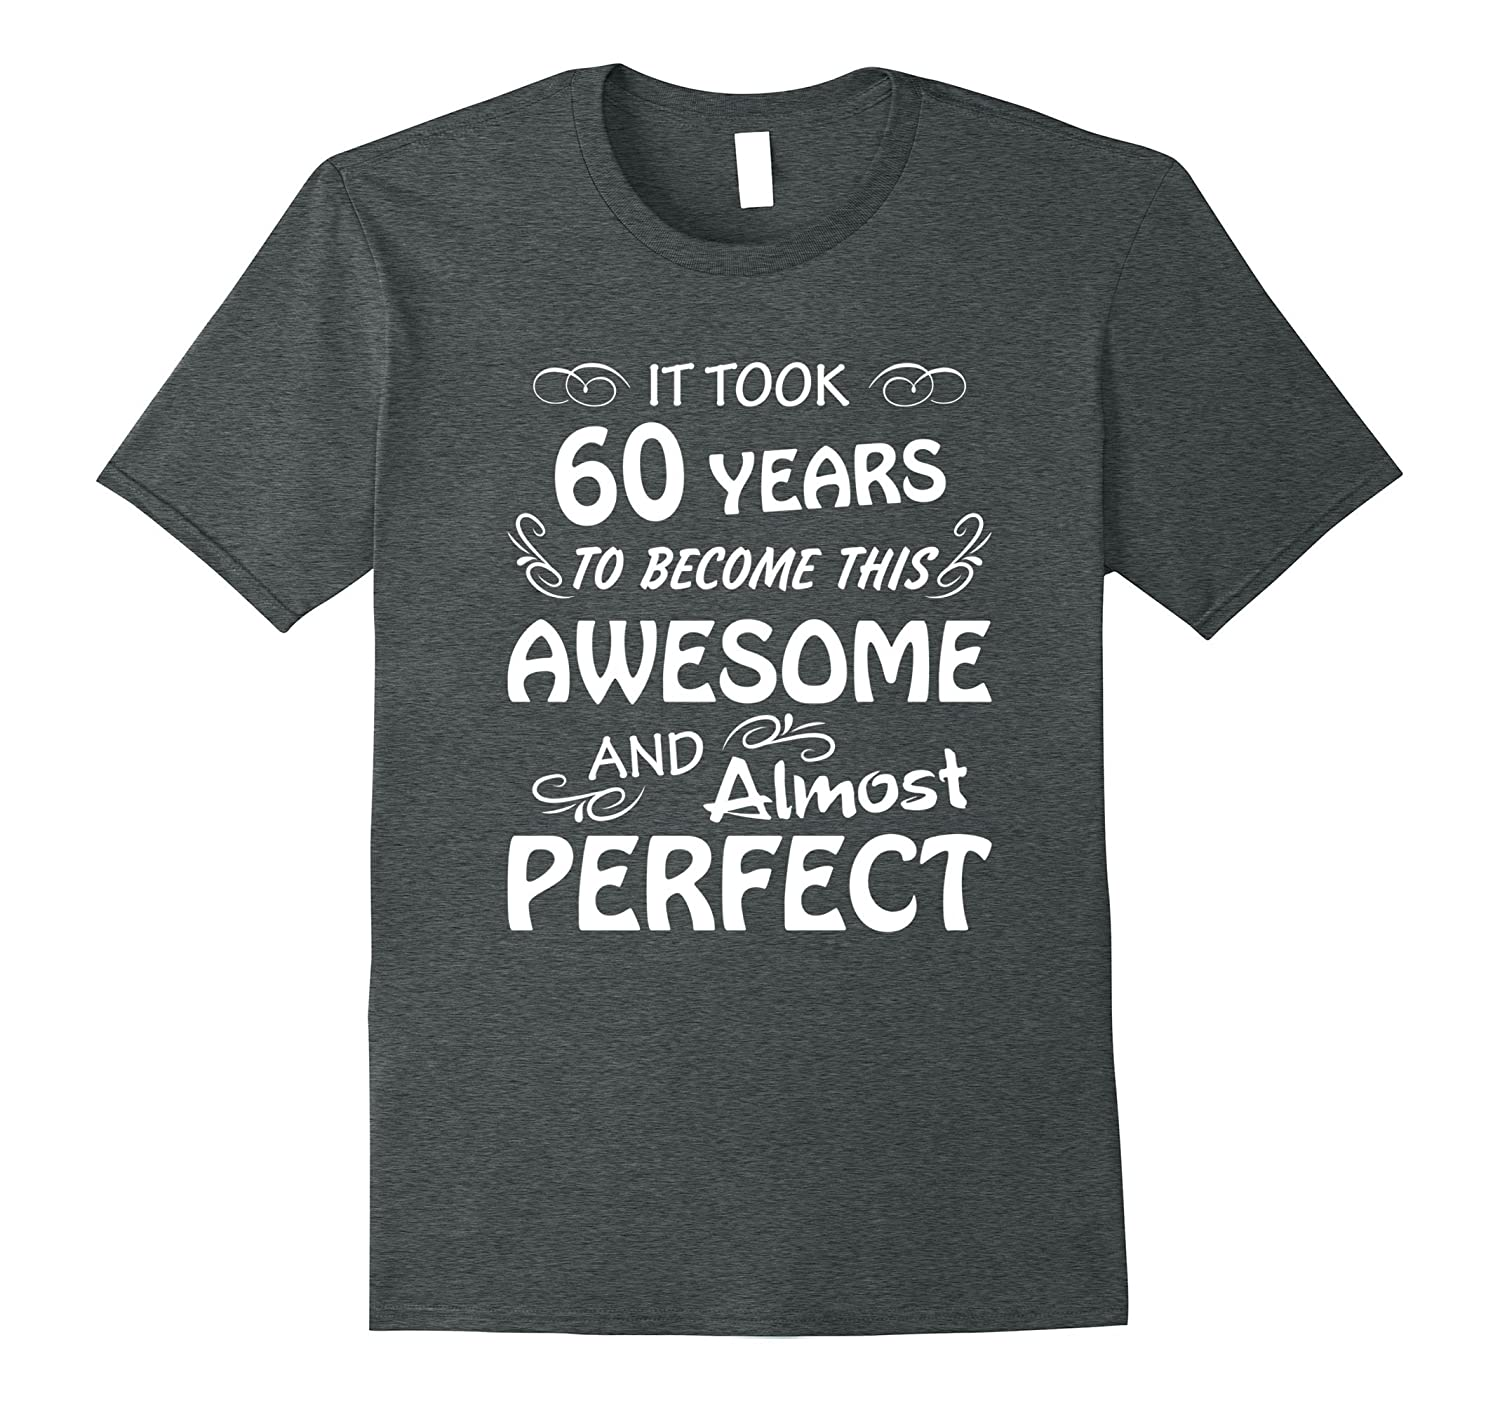 d9190fc4 60th Birthday Gifts For Ladies Took 60 Years Awesome Funny T-PL ...